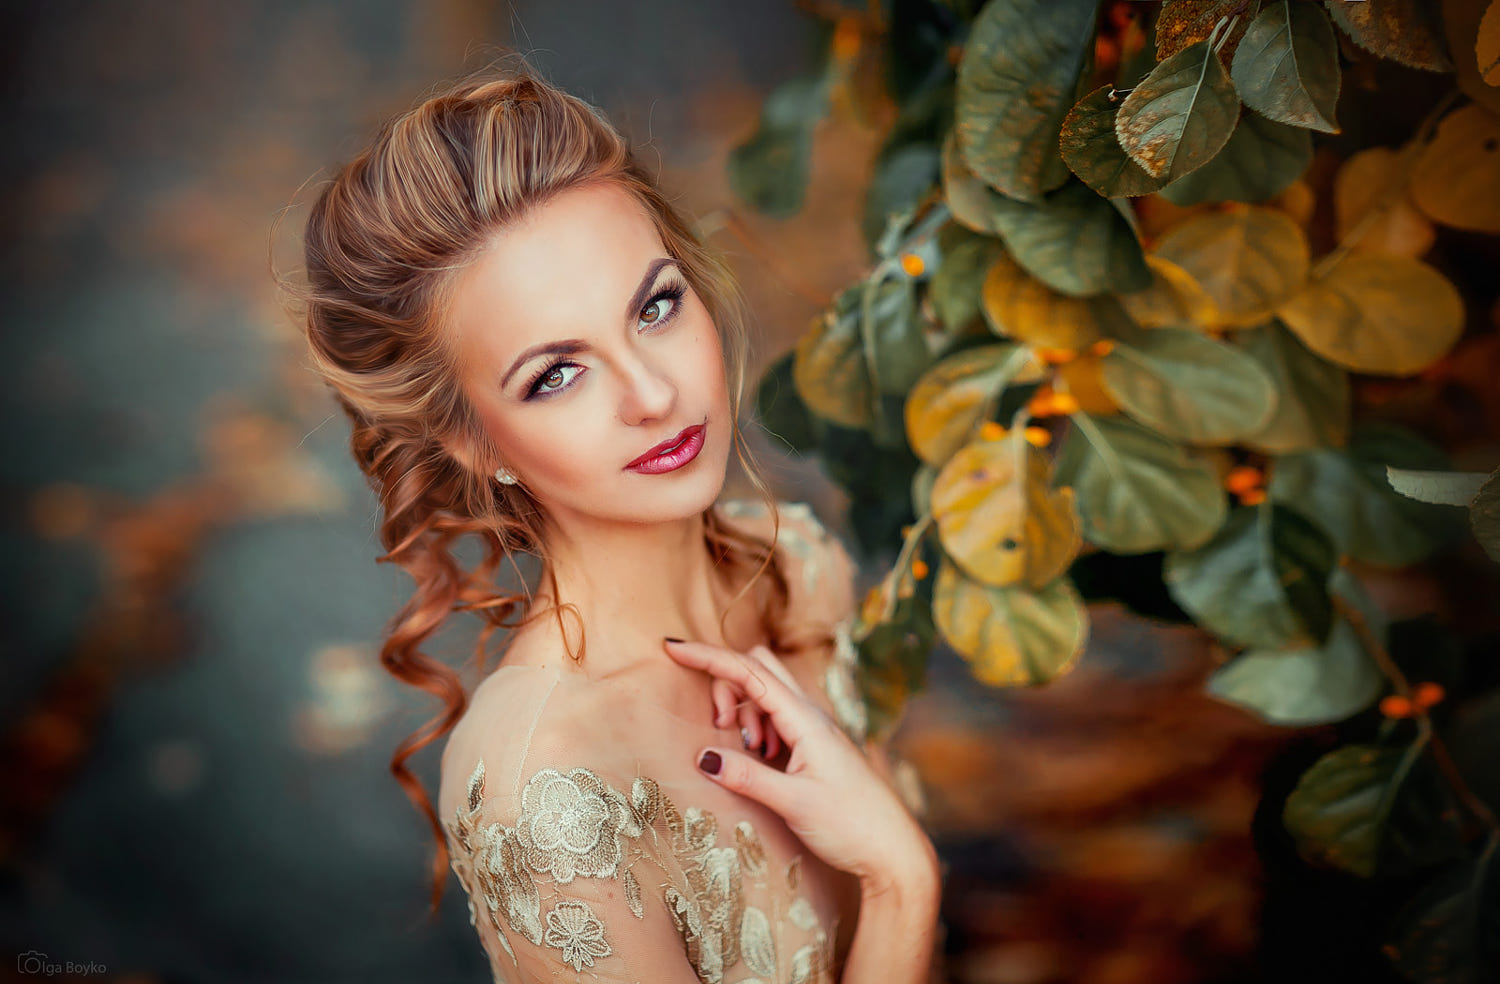 portrait photography anna by olga boyko